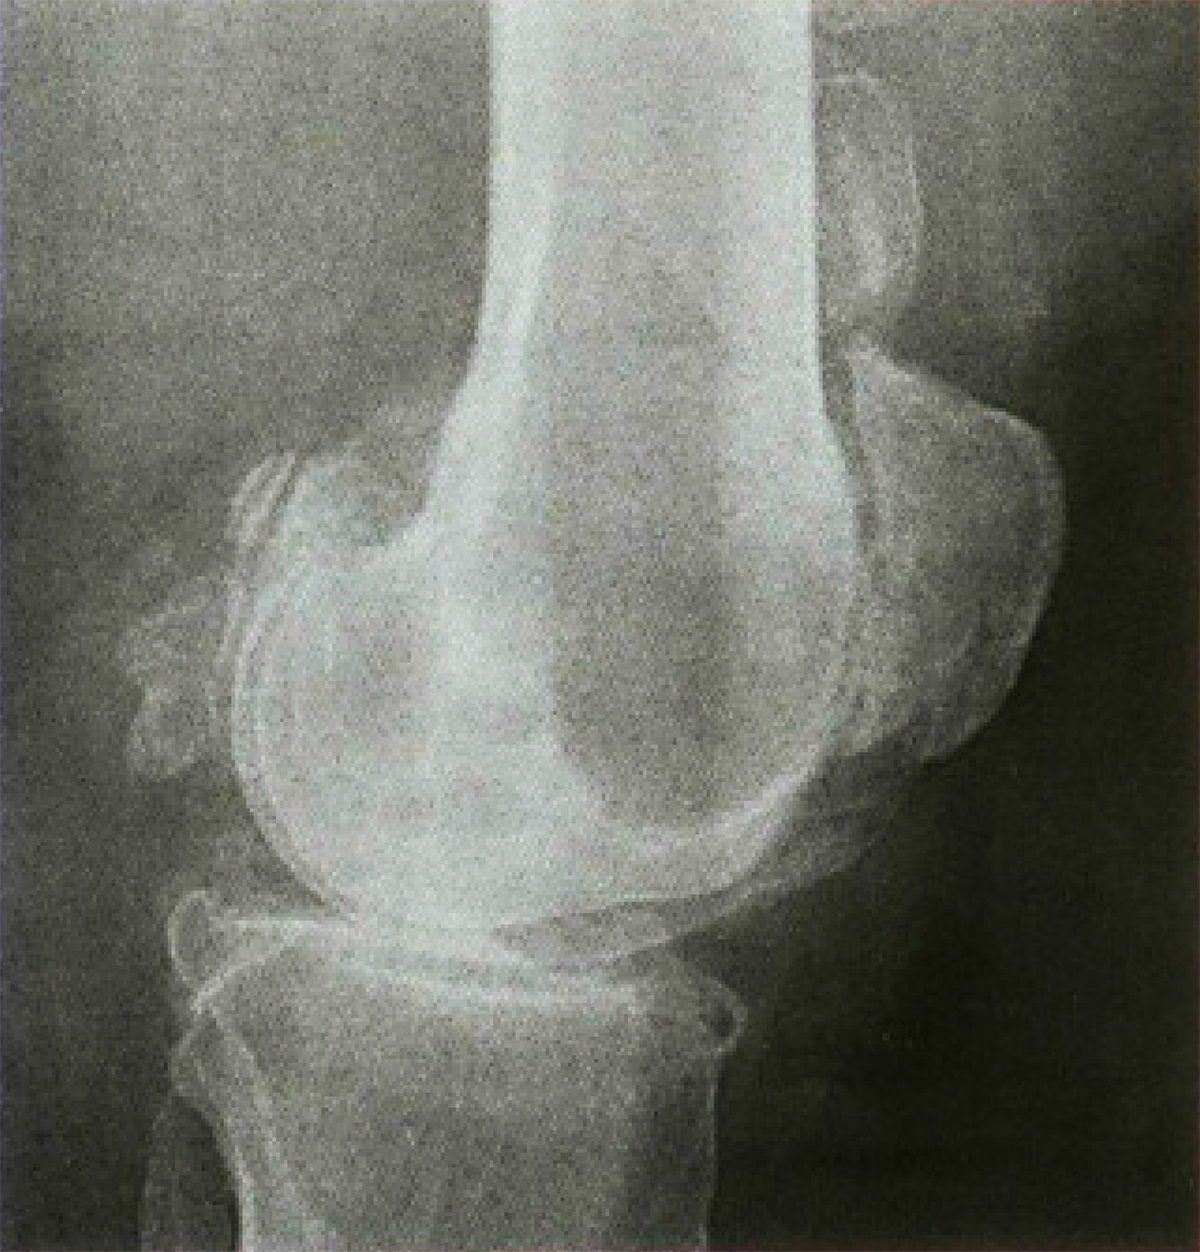 Four-in-one osteotomy